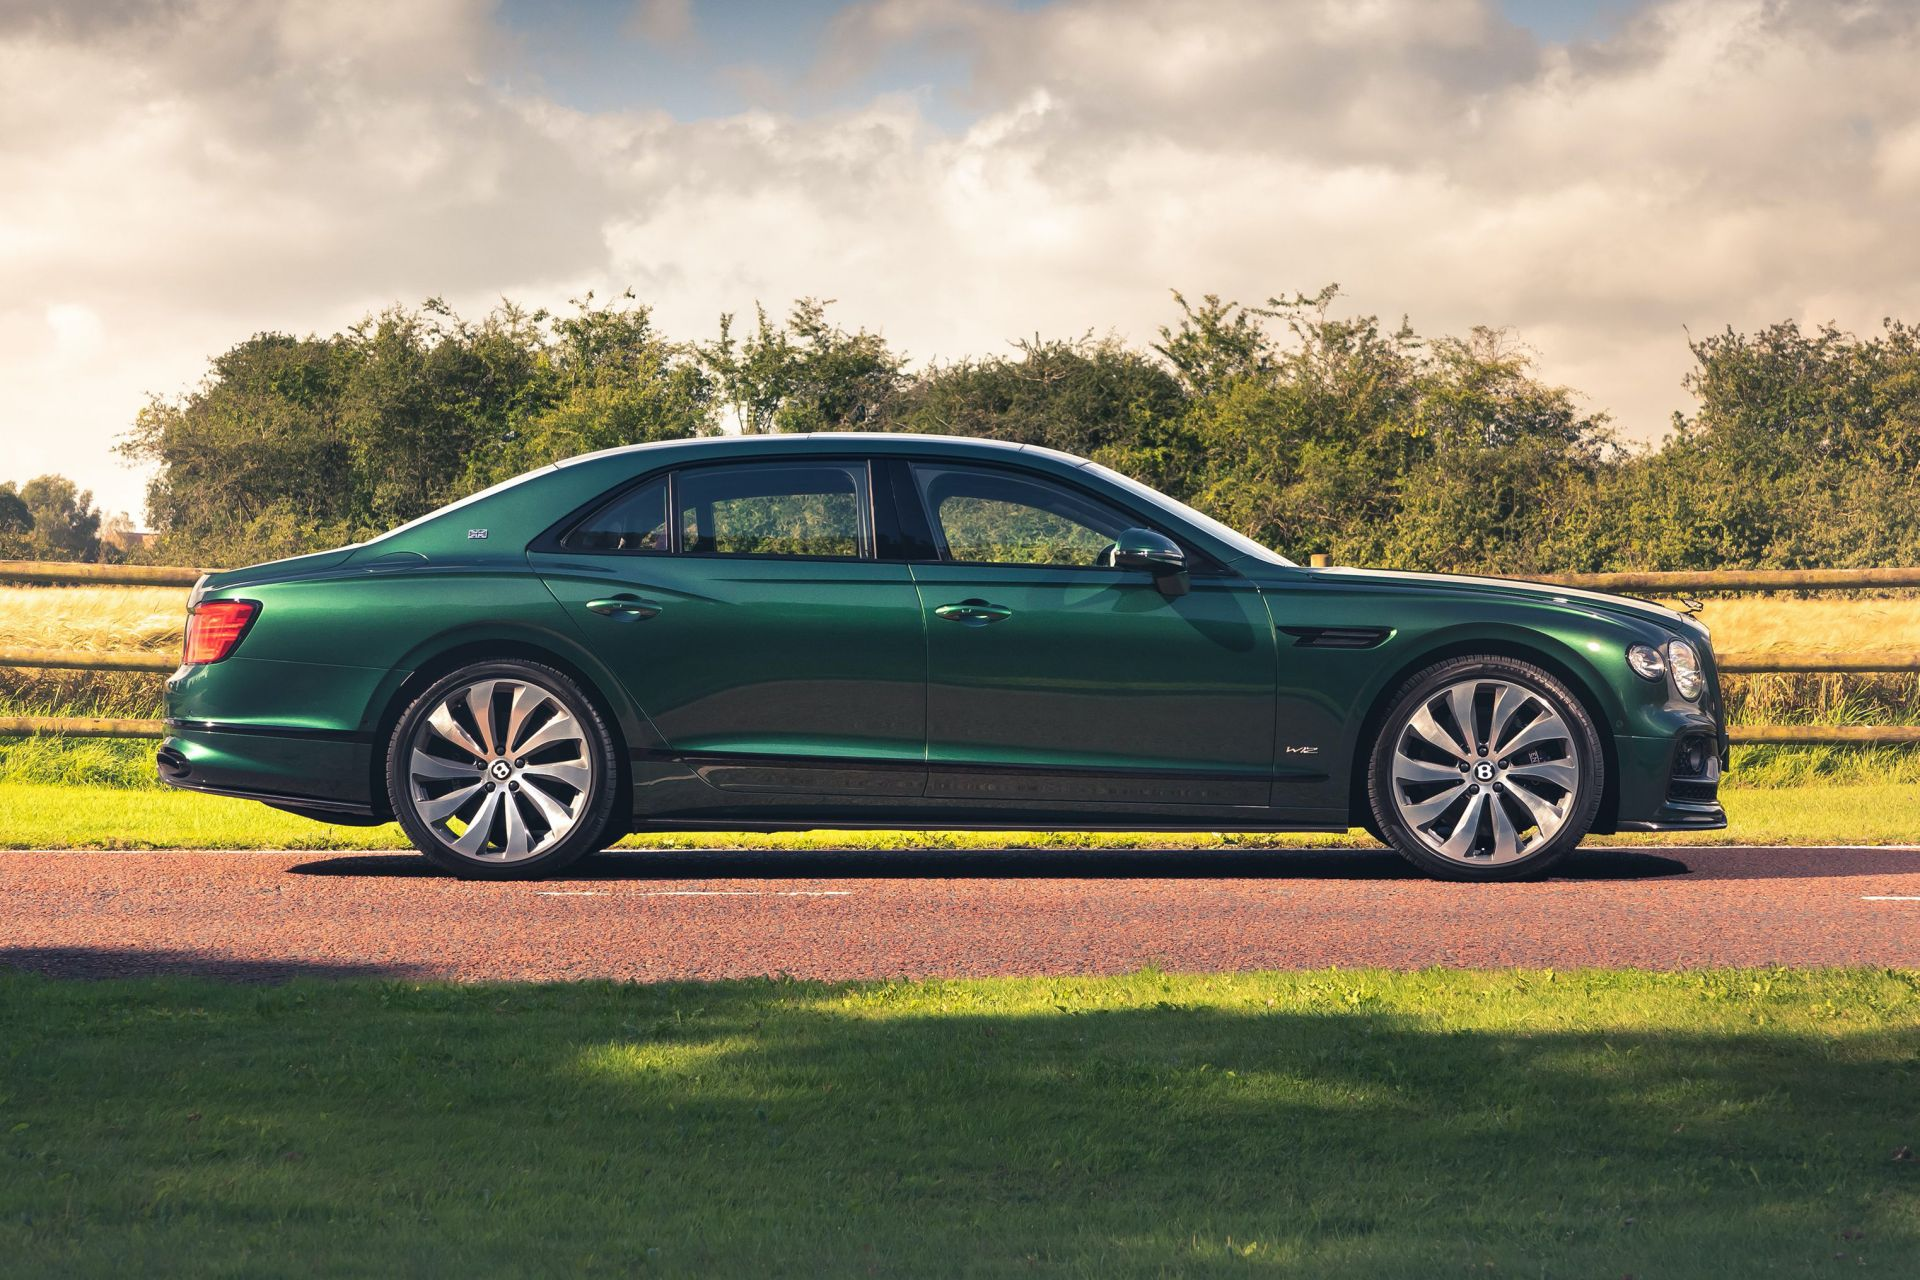 Bentley-Flying-Spur-Styling-Specification-9